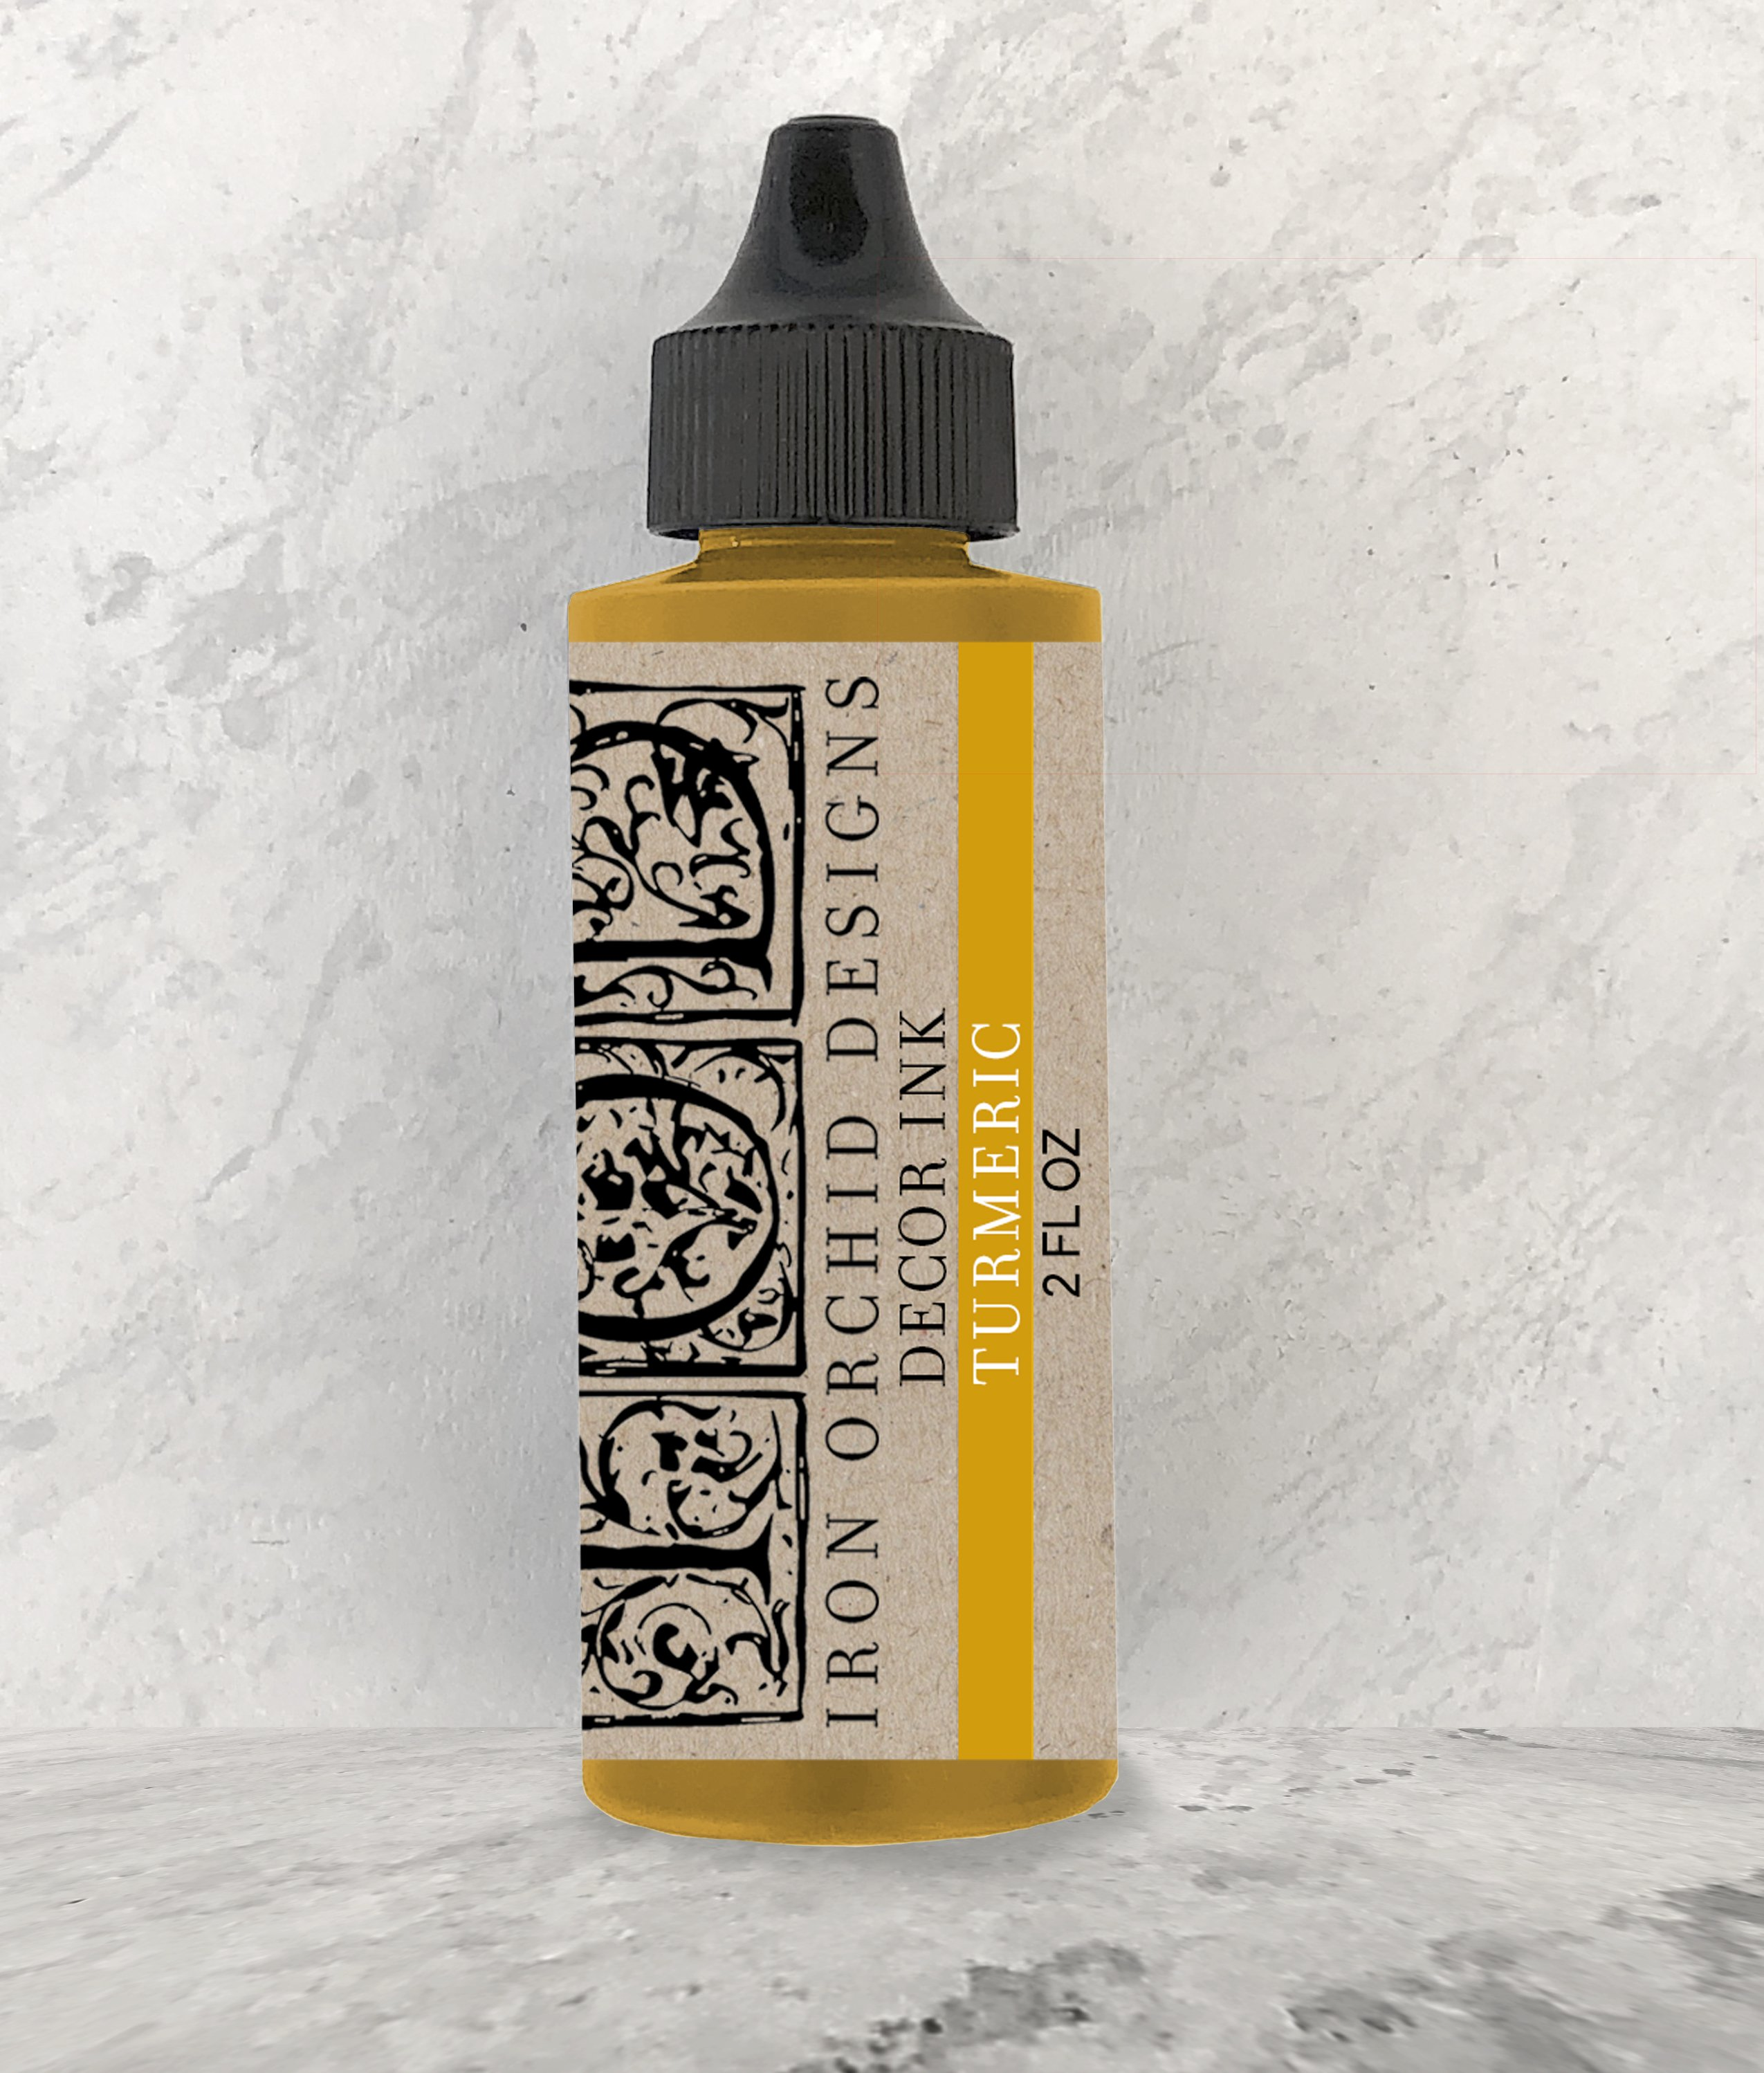 Have fun adding texture to your projects with our fun Iron Orchid Designs - Decor Ink - Tumeric   www.raggedy-bits.com   #raggedybits #IOD #DecorInk #Tumeric  #texture